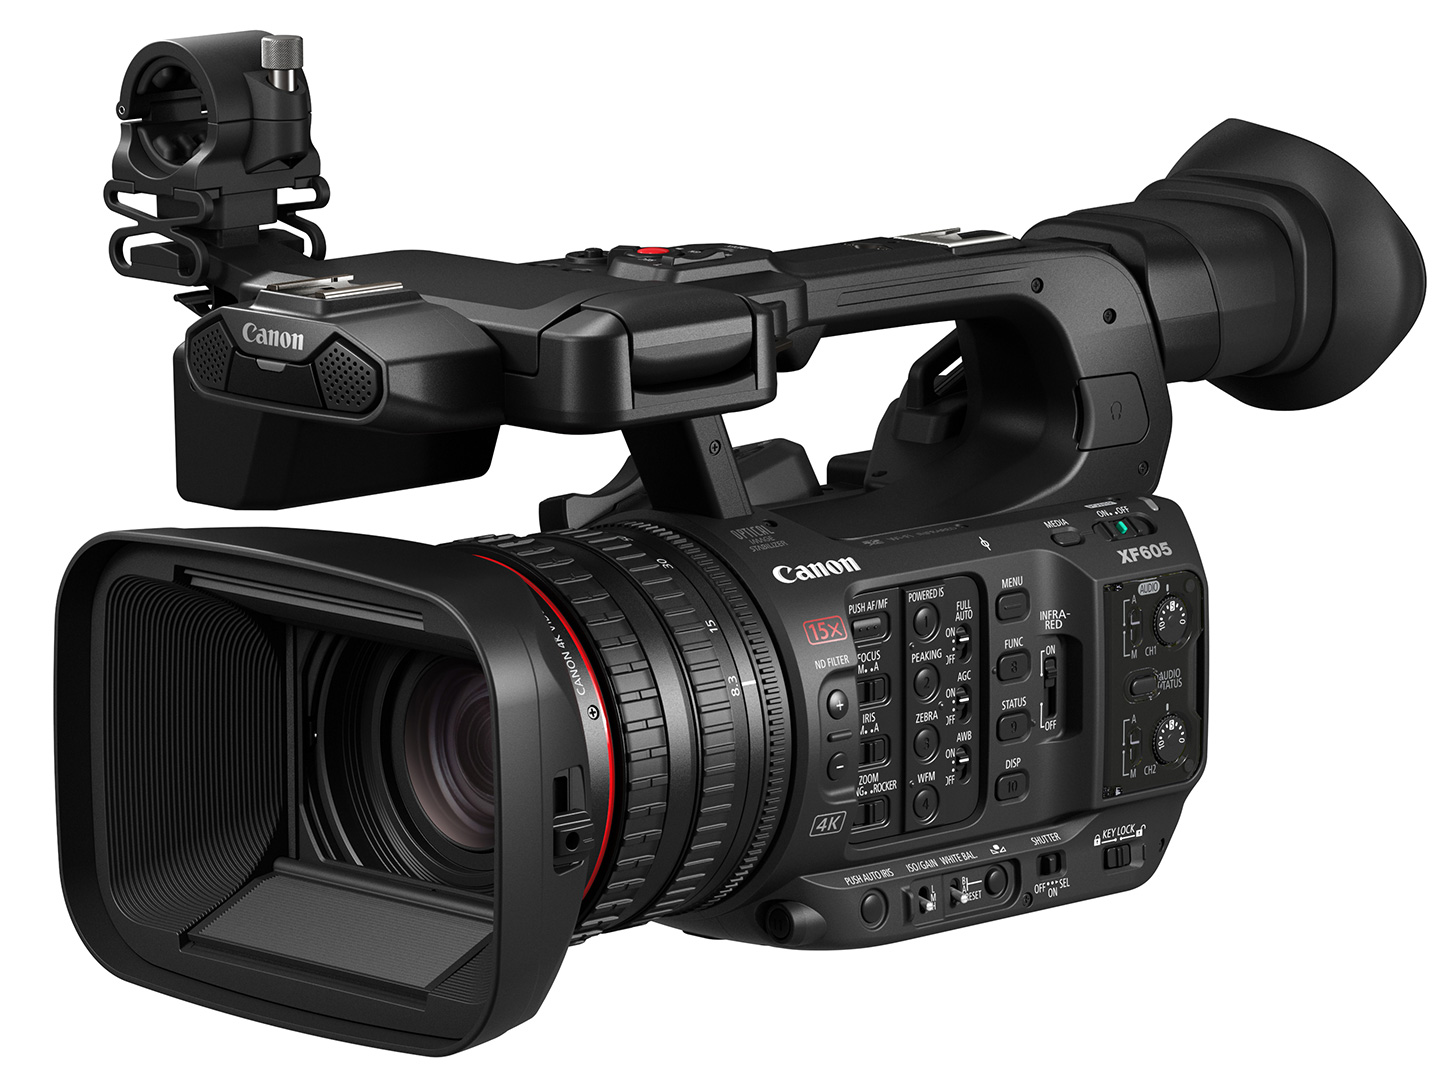 New professional camcorder from Canon - XF605